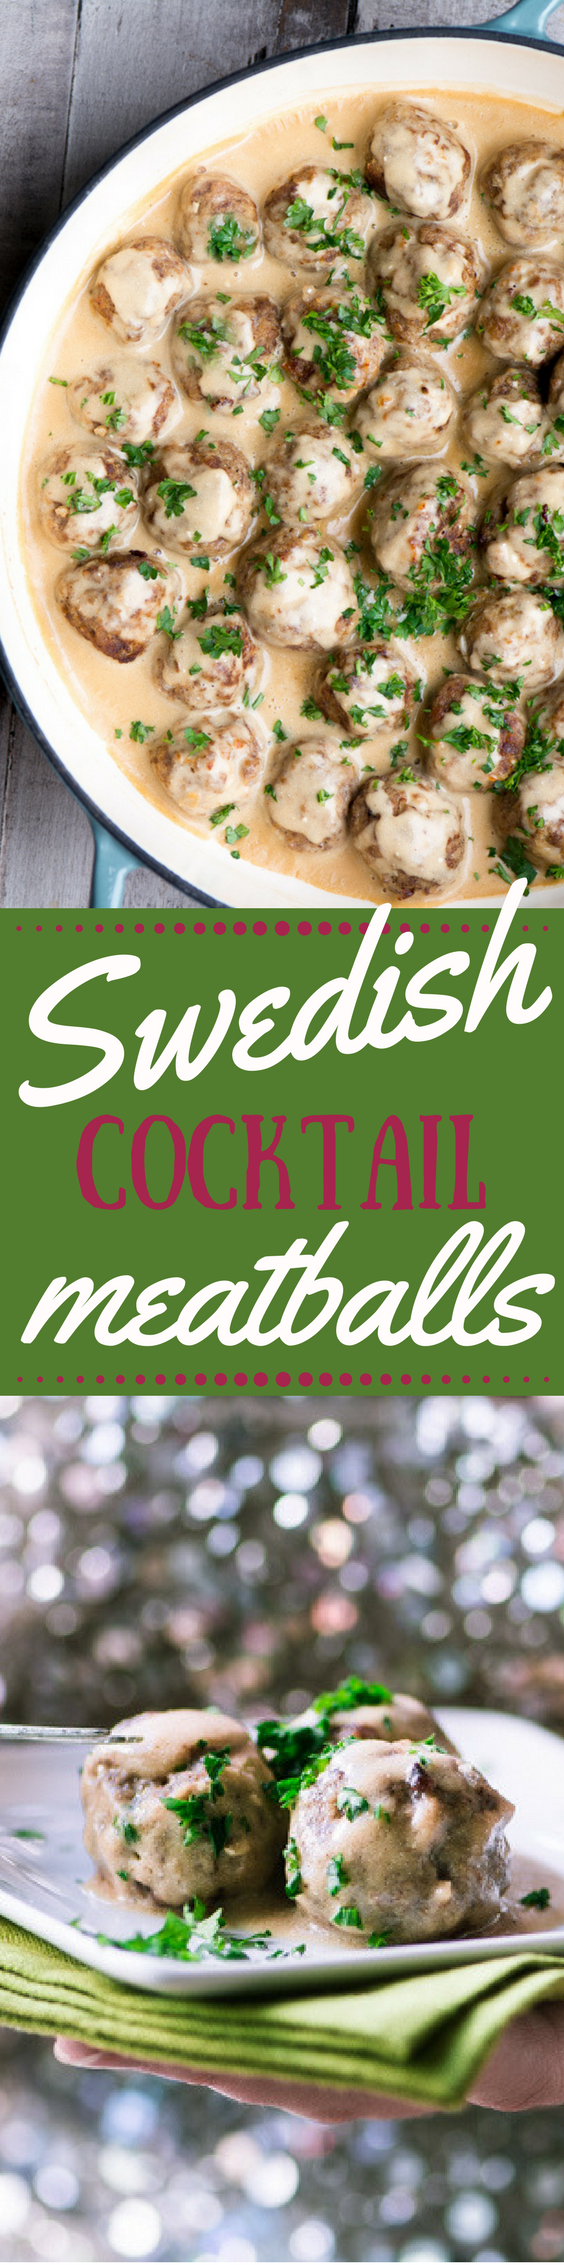 Swedish Cocktail Meatballs ~ tender 'Mad Men' era meatballs smothered in rich gravy ~ the ultimate holiday appetizer that you can whip up in under an hour! #appetizer #newyearseve #Christmasappetizer #holidayappetizer #meatballs #swedishrecipe #ikeameatballs #cocktailmeatballs #groundbeef